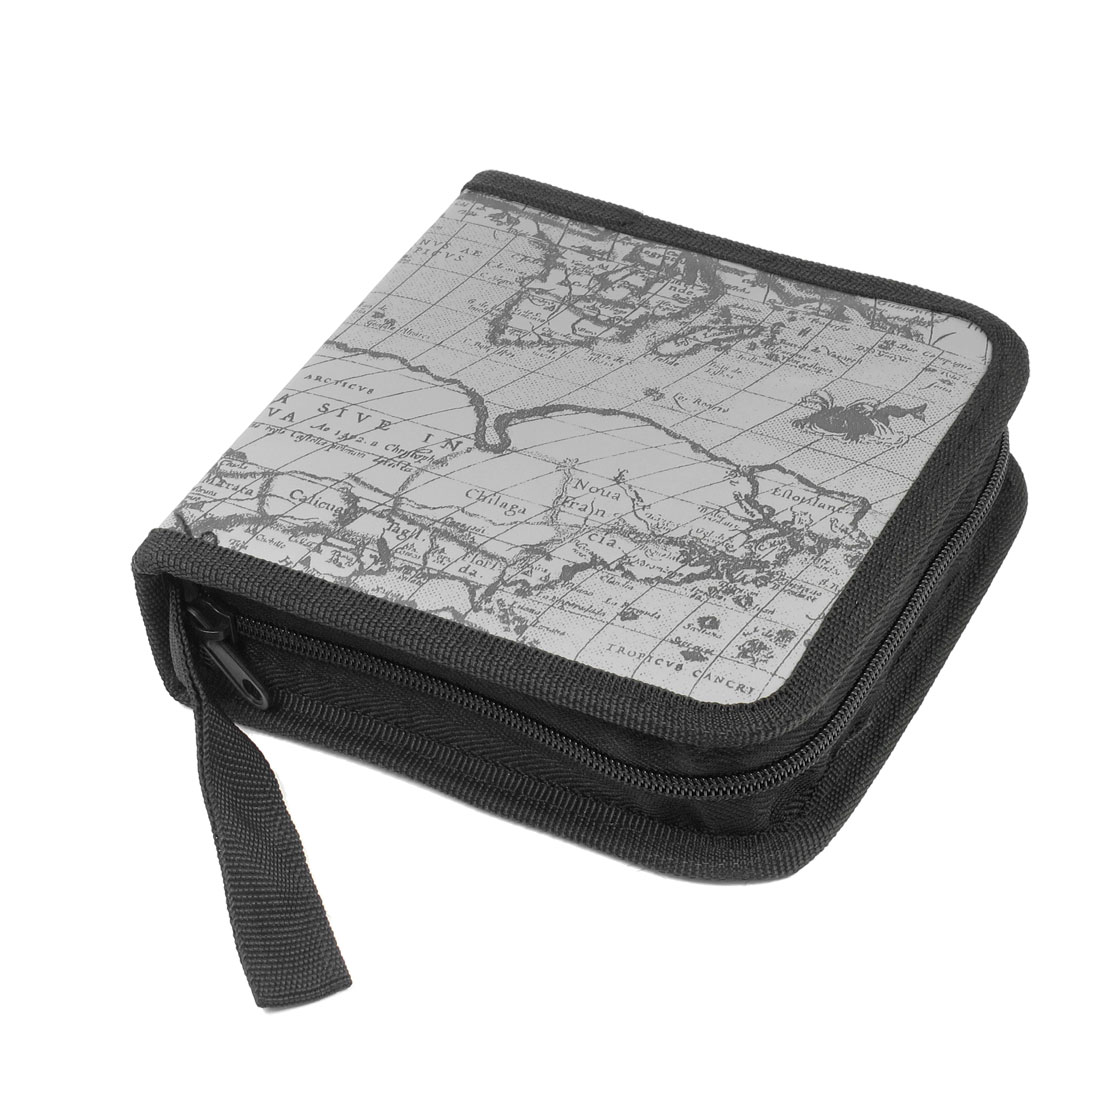 World Map Print Square Zipper 40 Capacity CD DVD Wallet Case Holder Gray